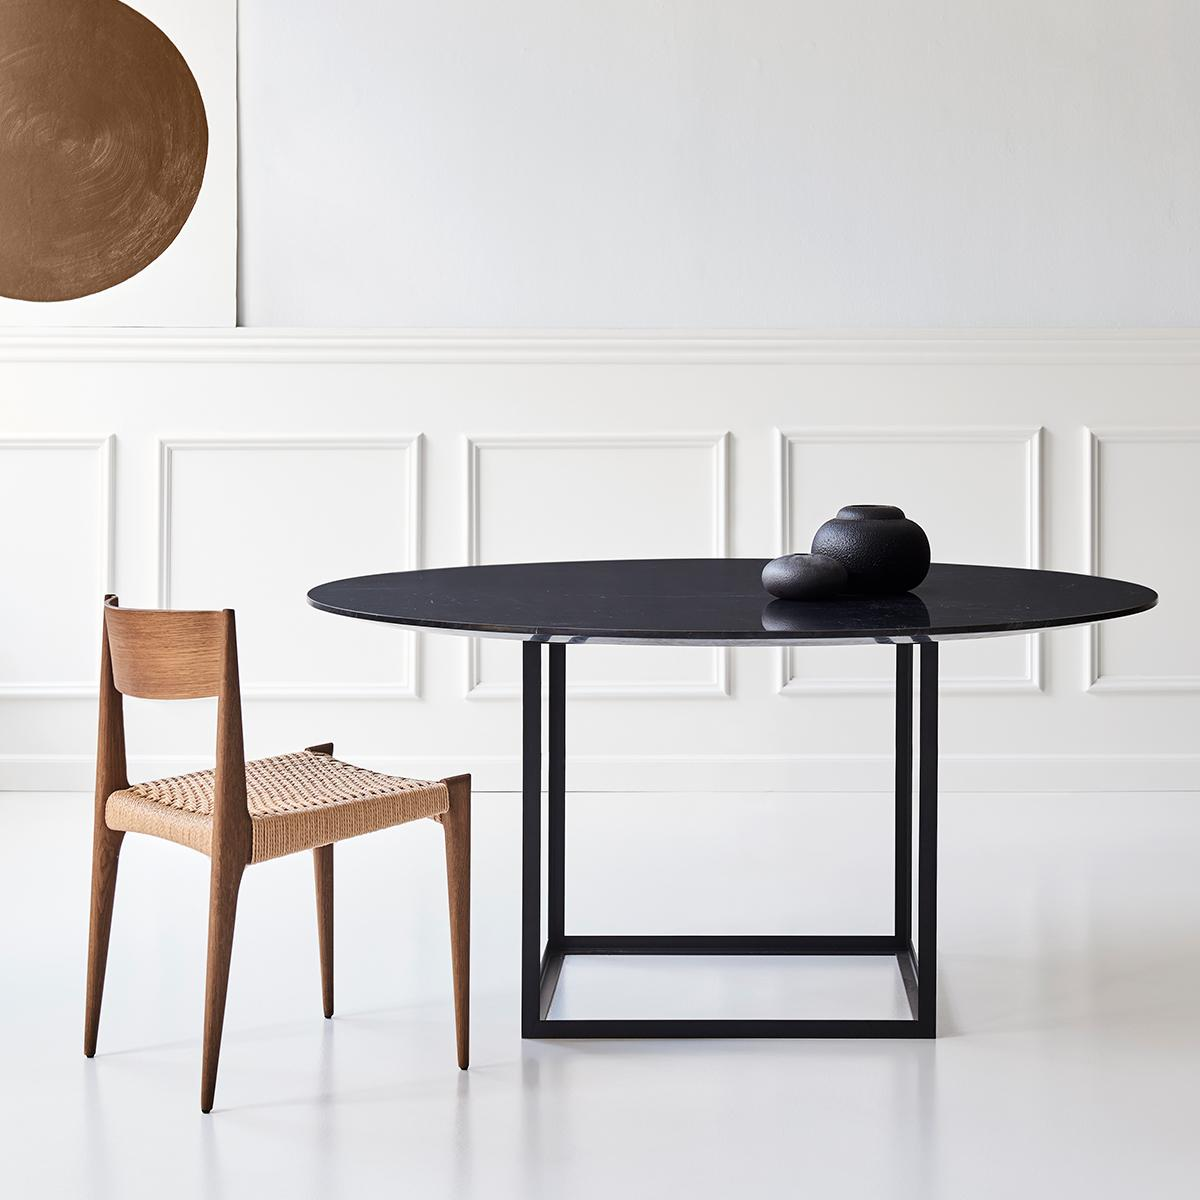 Untitled-1_0002_JEWEL TABLE_round_Ø150_black marble_PIA CHAIR_smoked oak_LB12